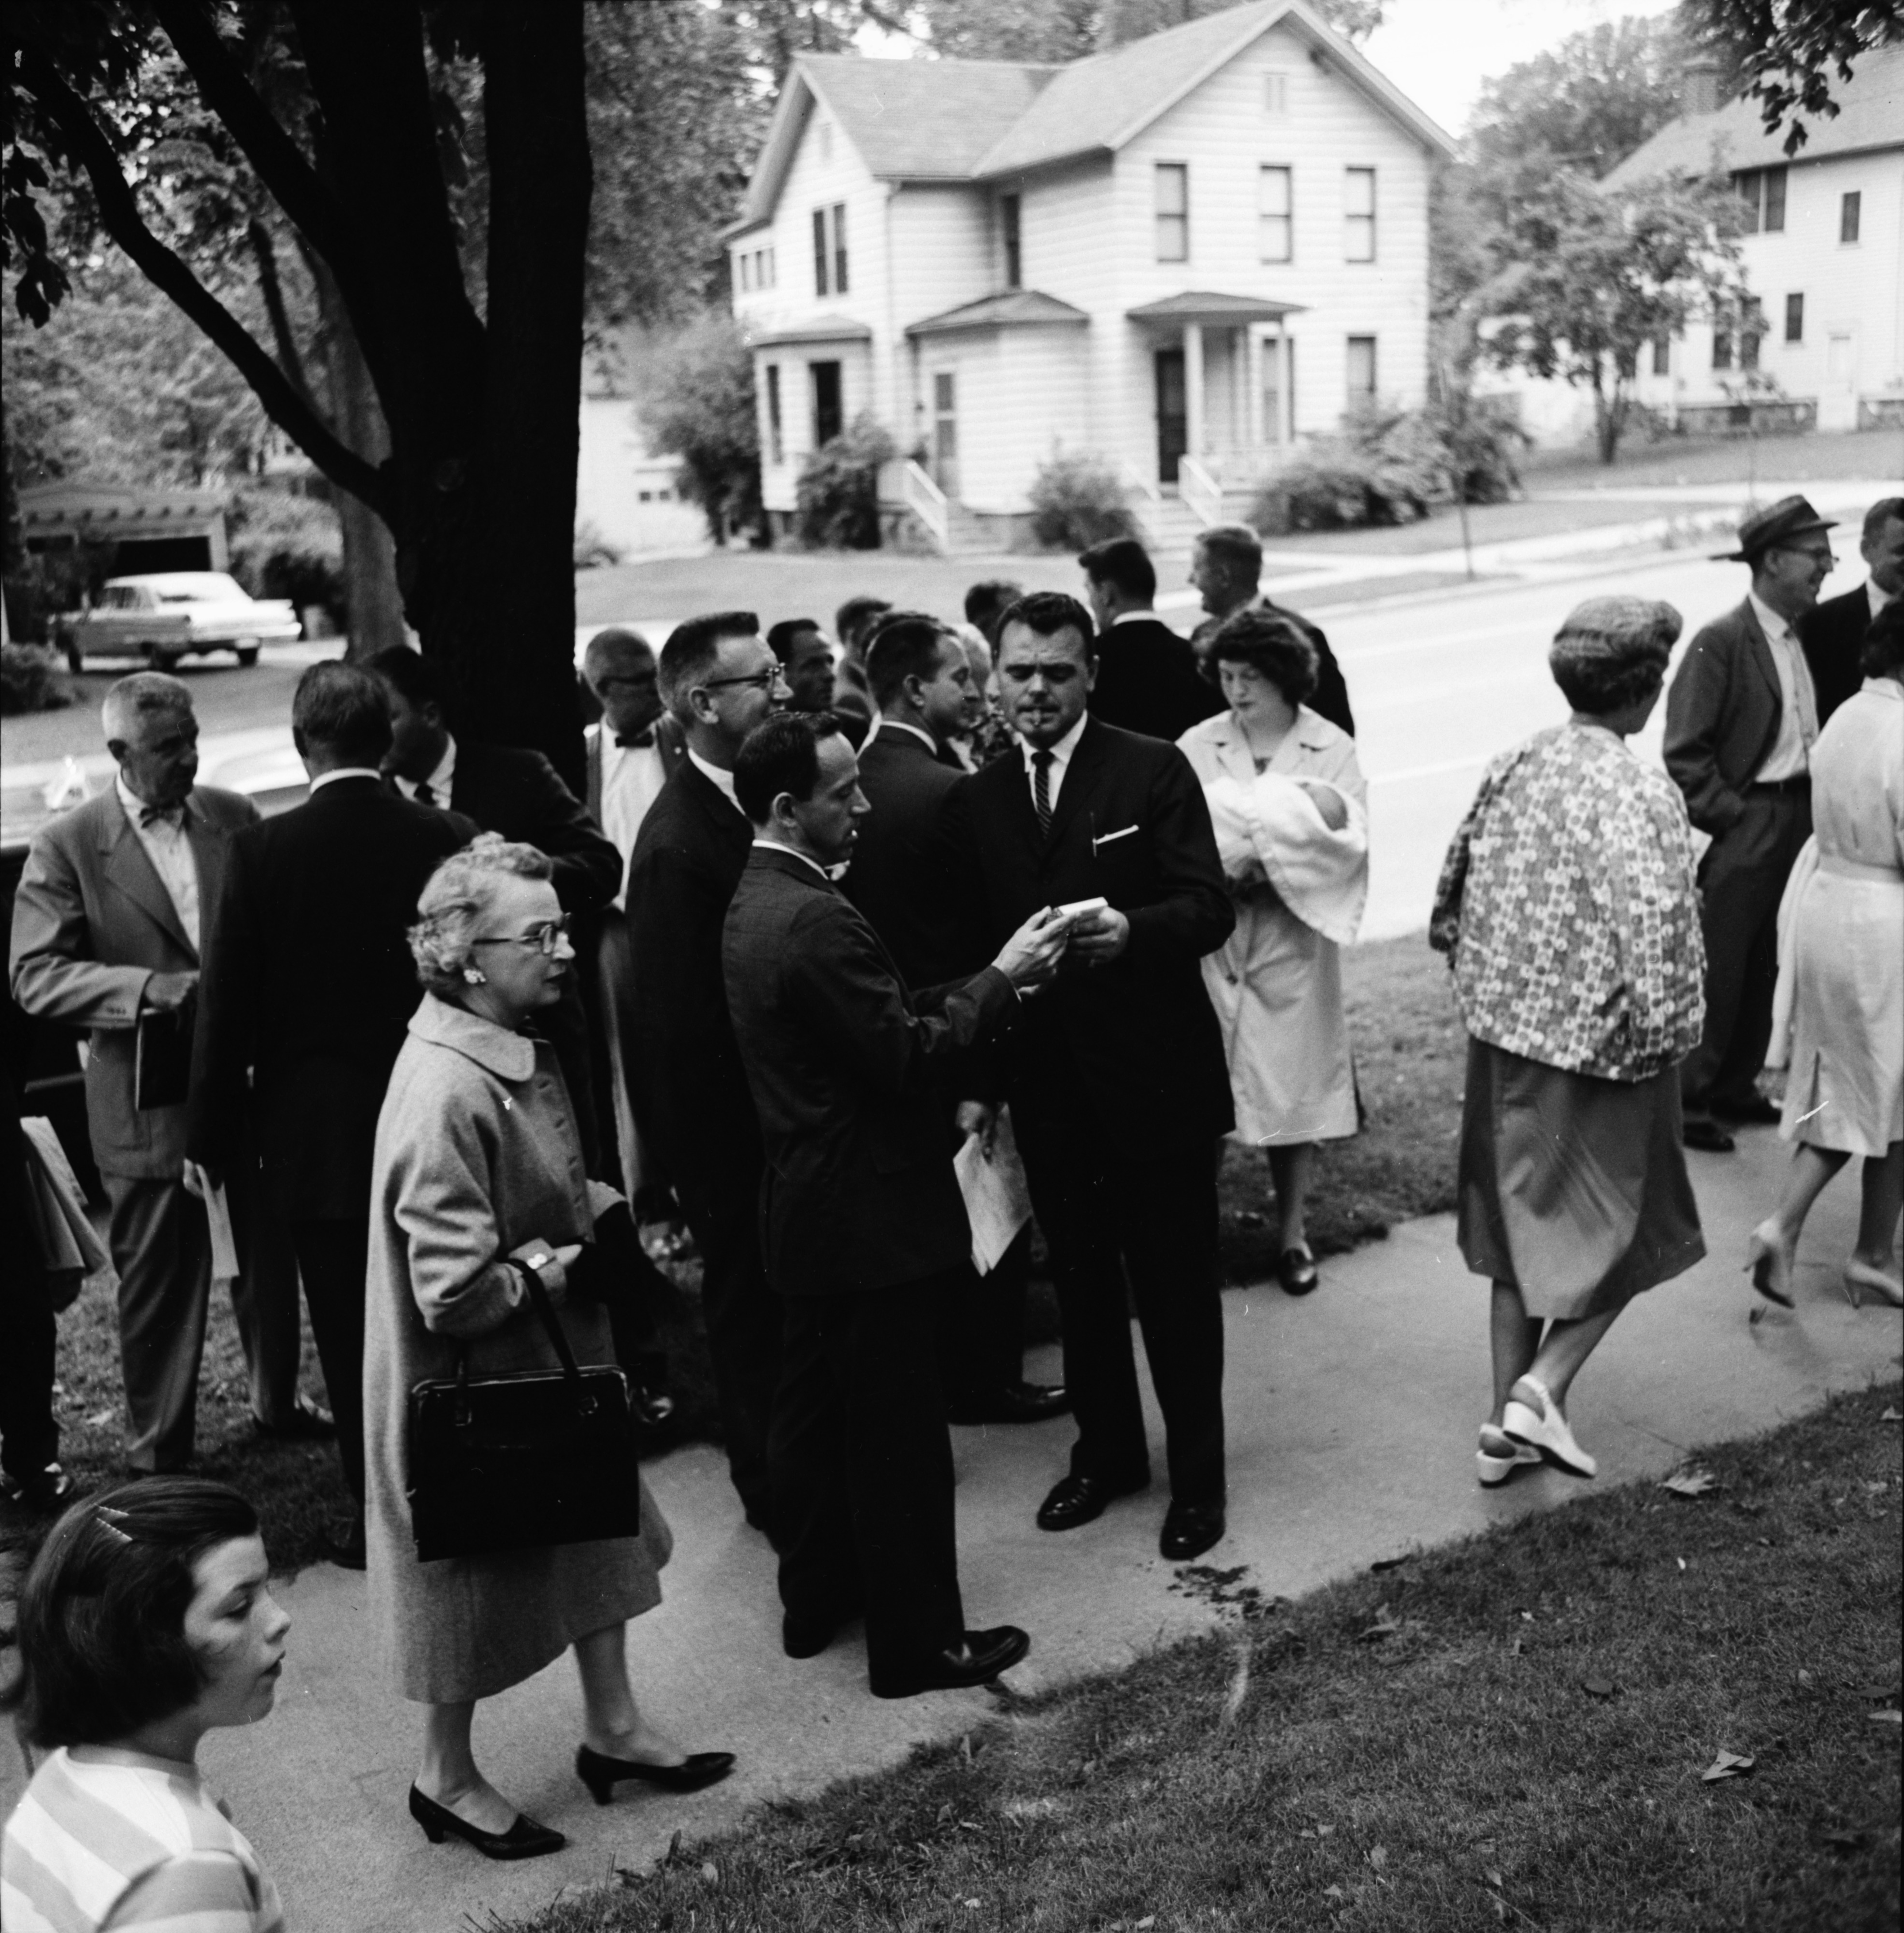 At the Time Capsule on Huron Street Lawn, June 1962 image